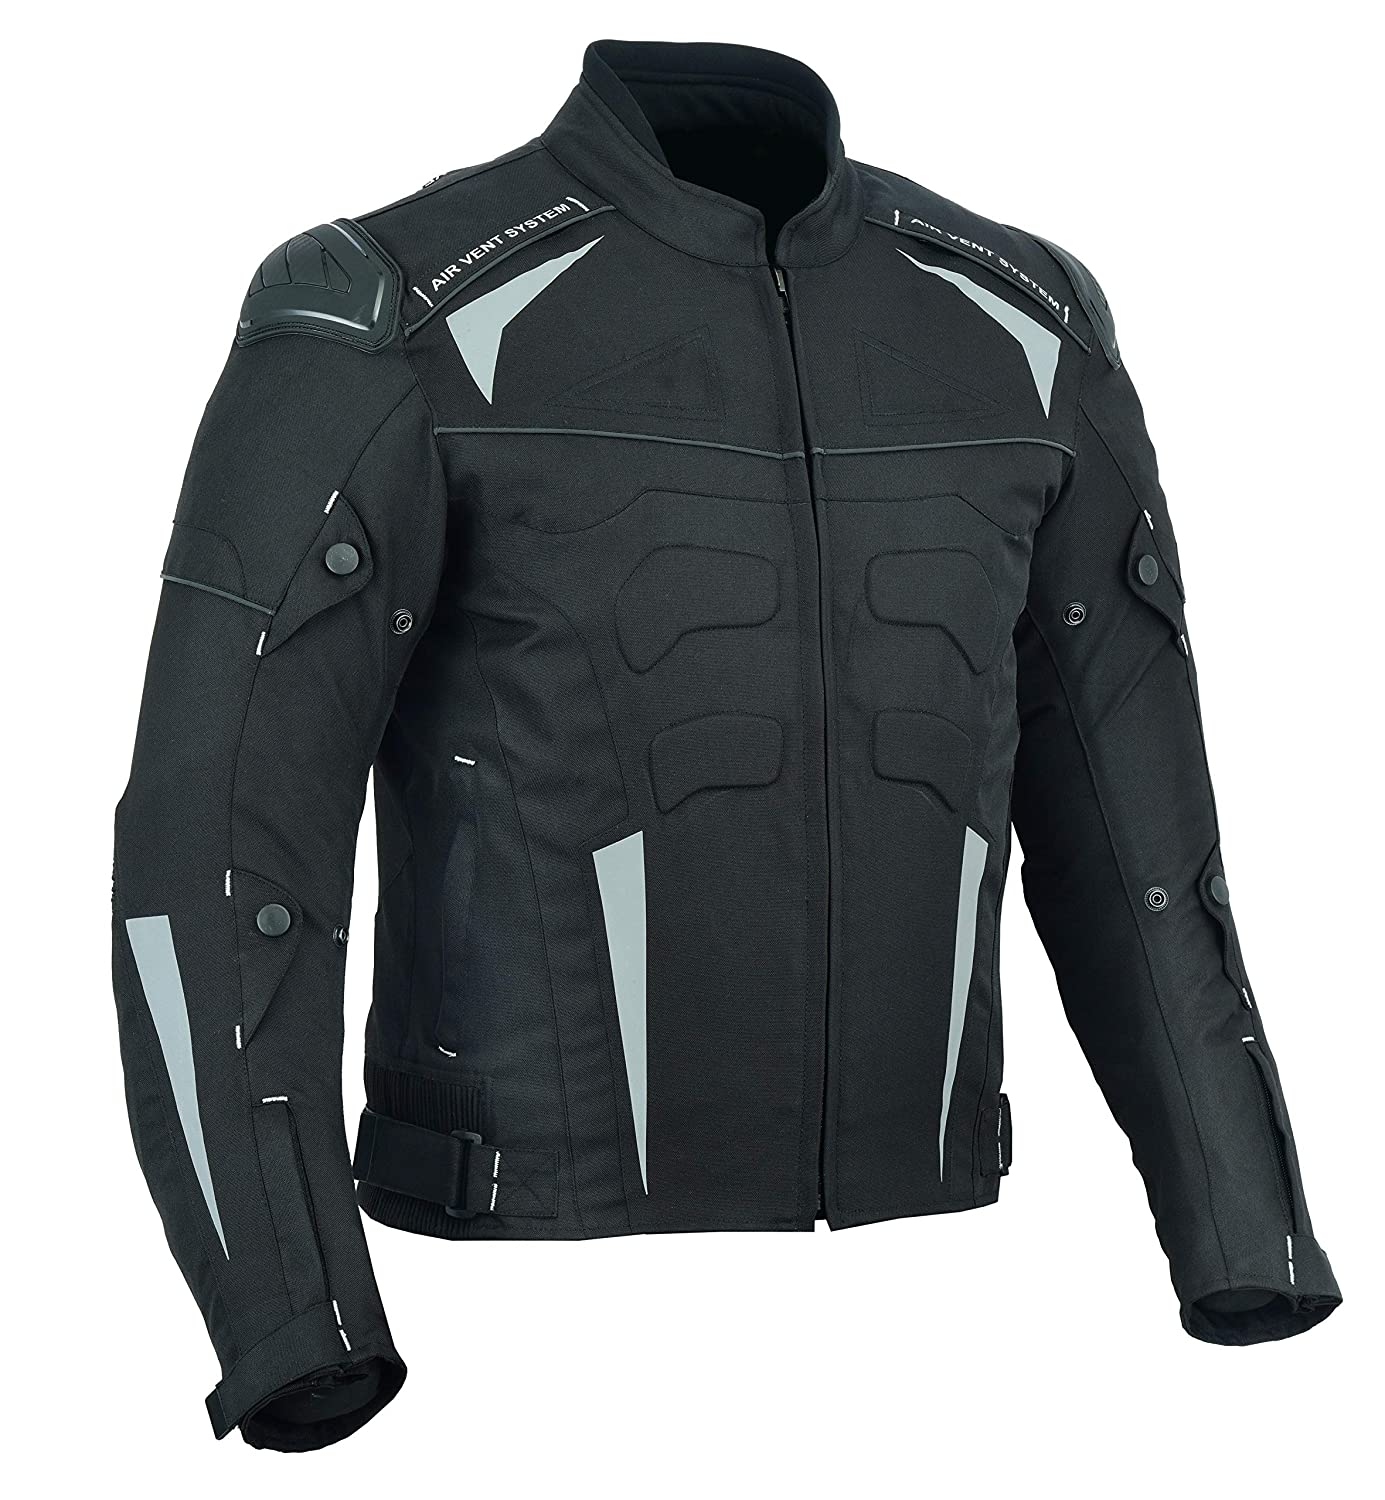 0321311bf MOTORCYCLE ARMOURED HIGH PROTECTION CORDURA WATERPROOF JACKET BLACK WITH 7  ARMOUR CJ-9434 (3XL)